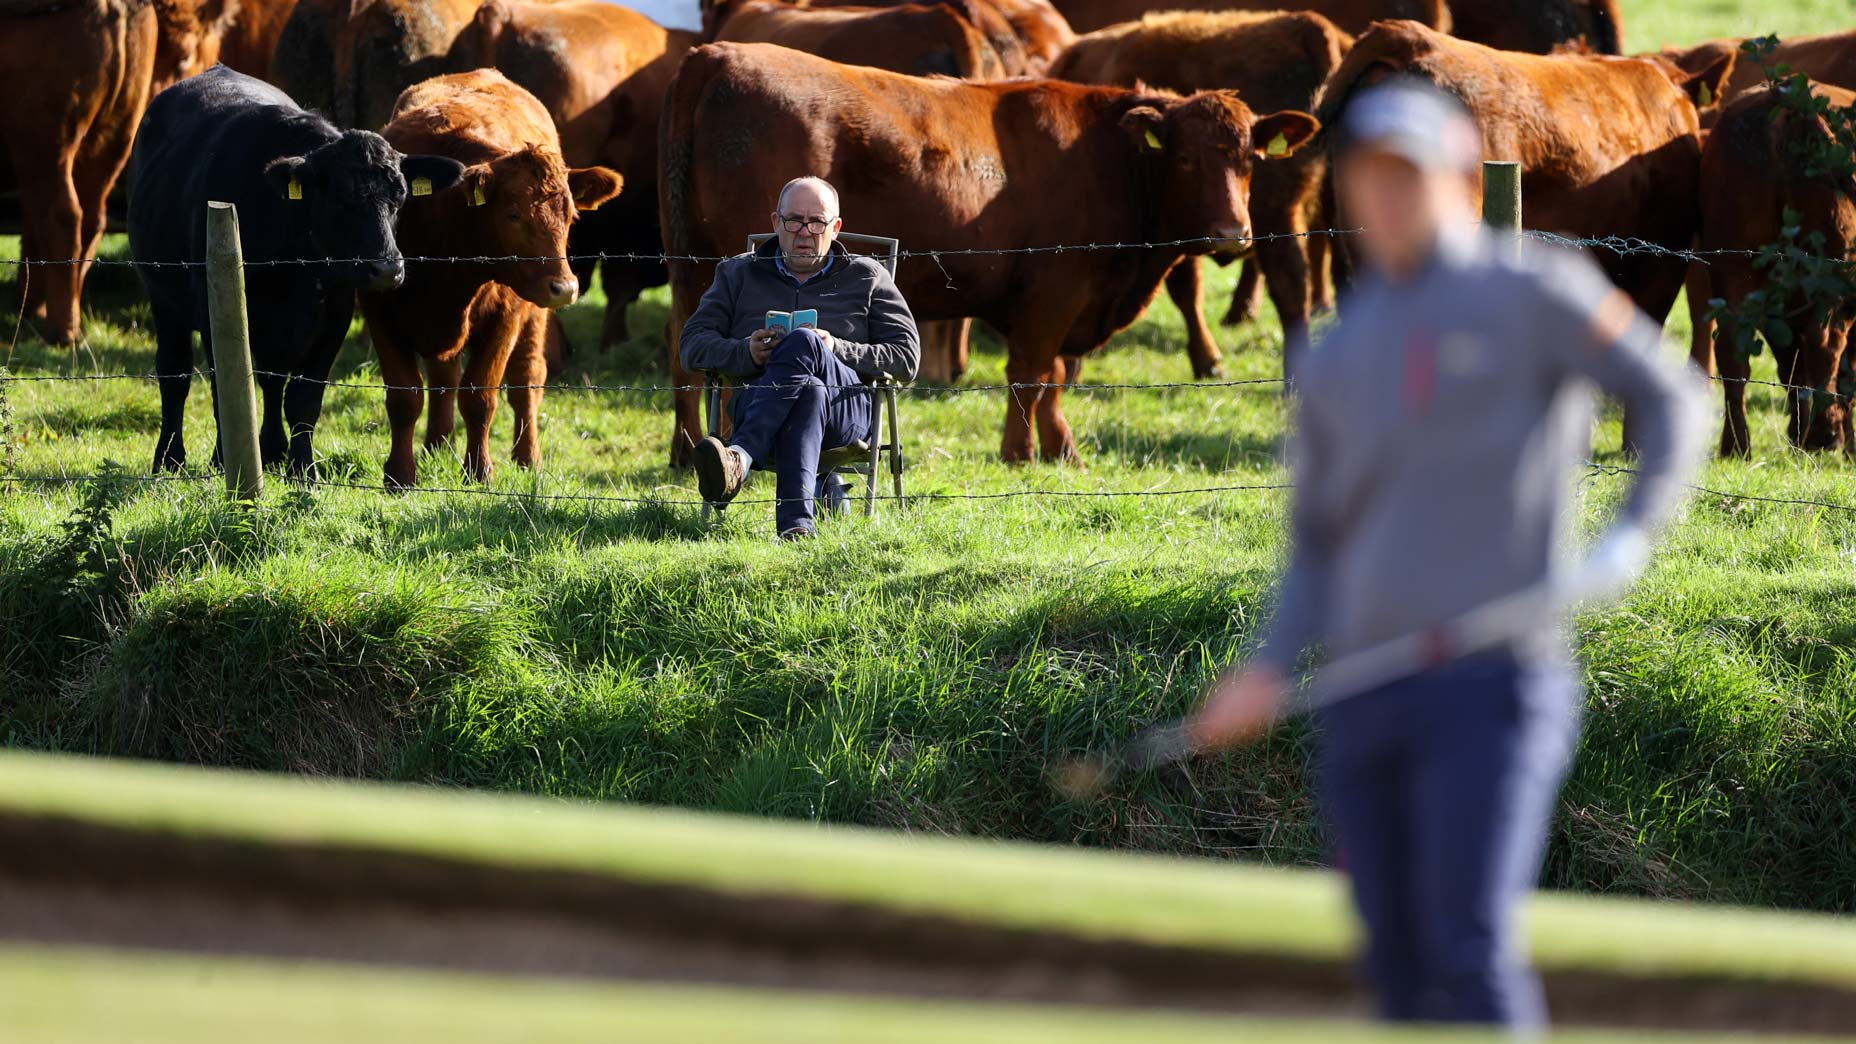 a man watches golf with cows behind him